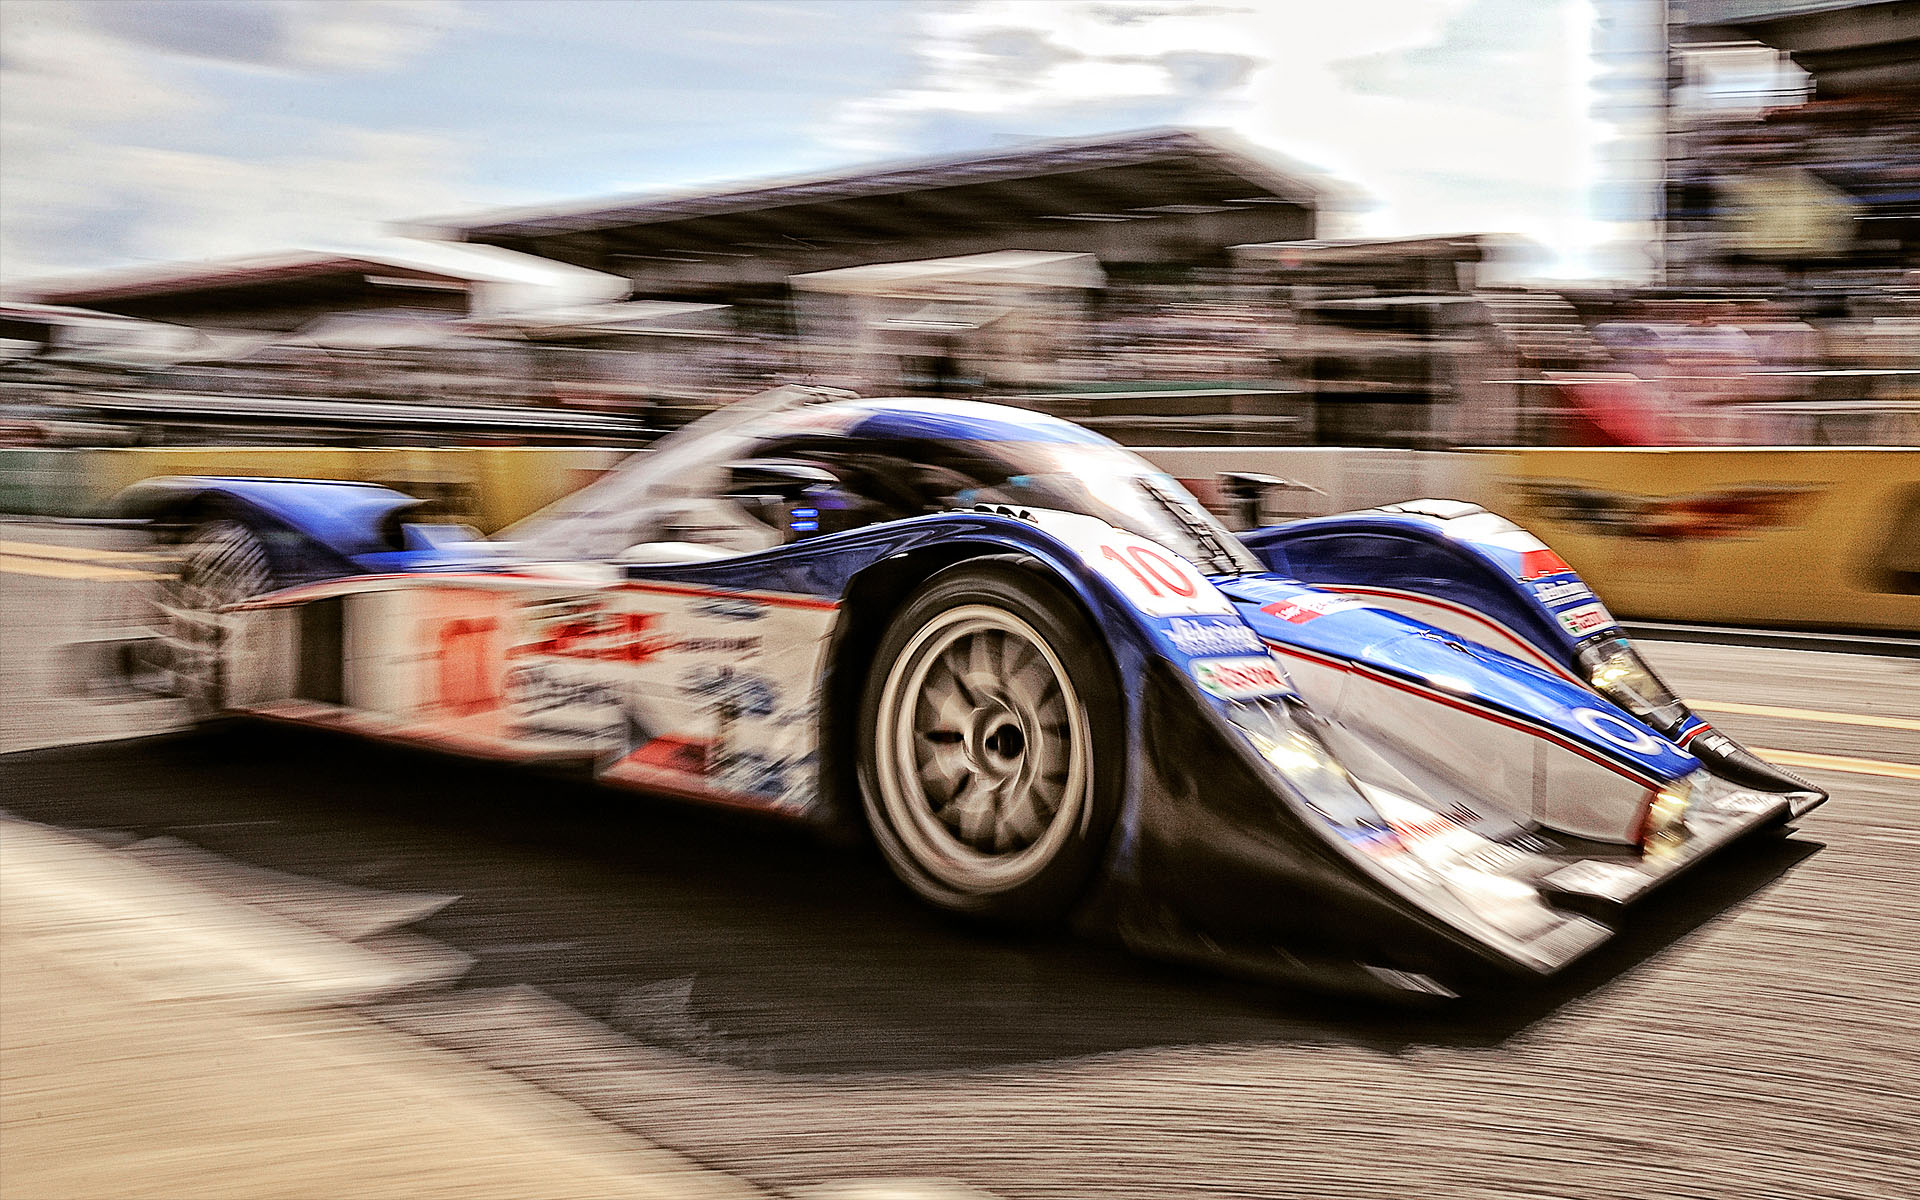 Peugeot 908 by Sports Photographer Blair Bunting